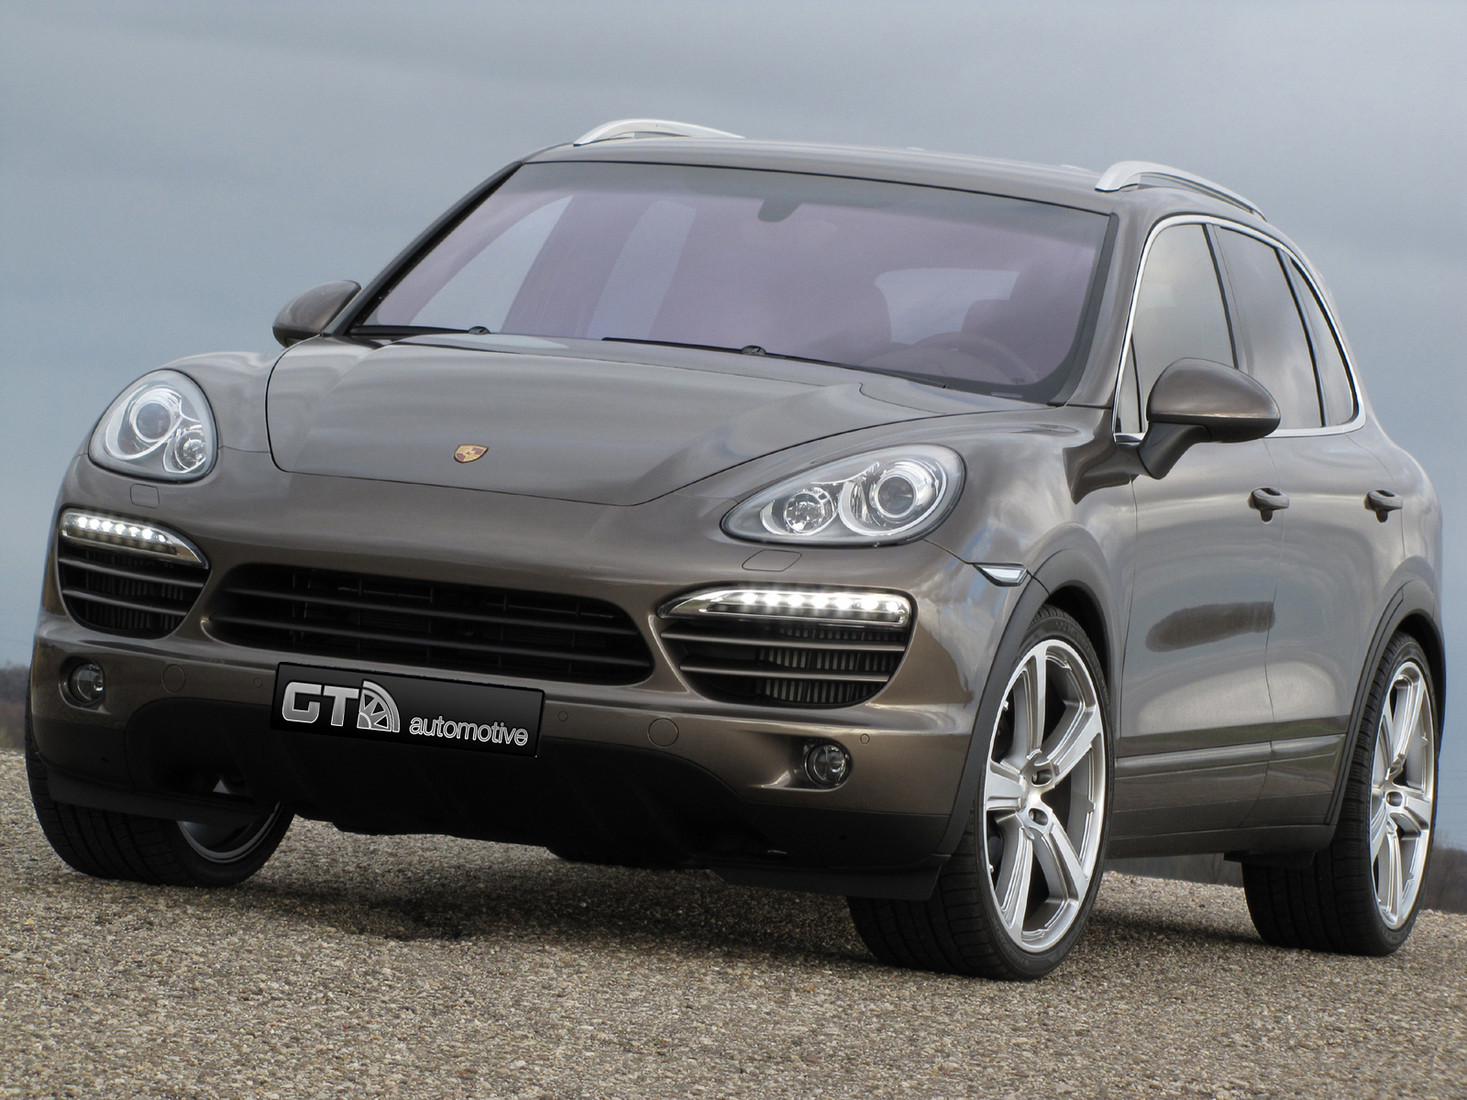 news alufelgen 22 zoll felgenkombi f r porsche cayenne. Black Bedroom Furniture Sets. Home Design Ideas